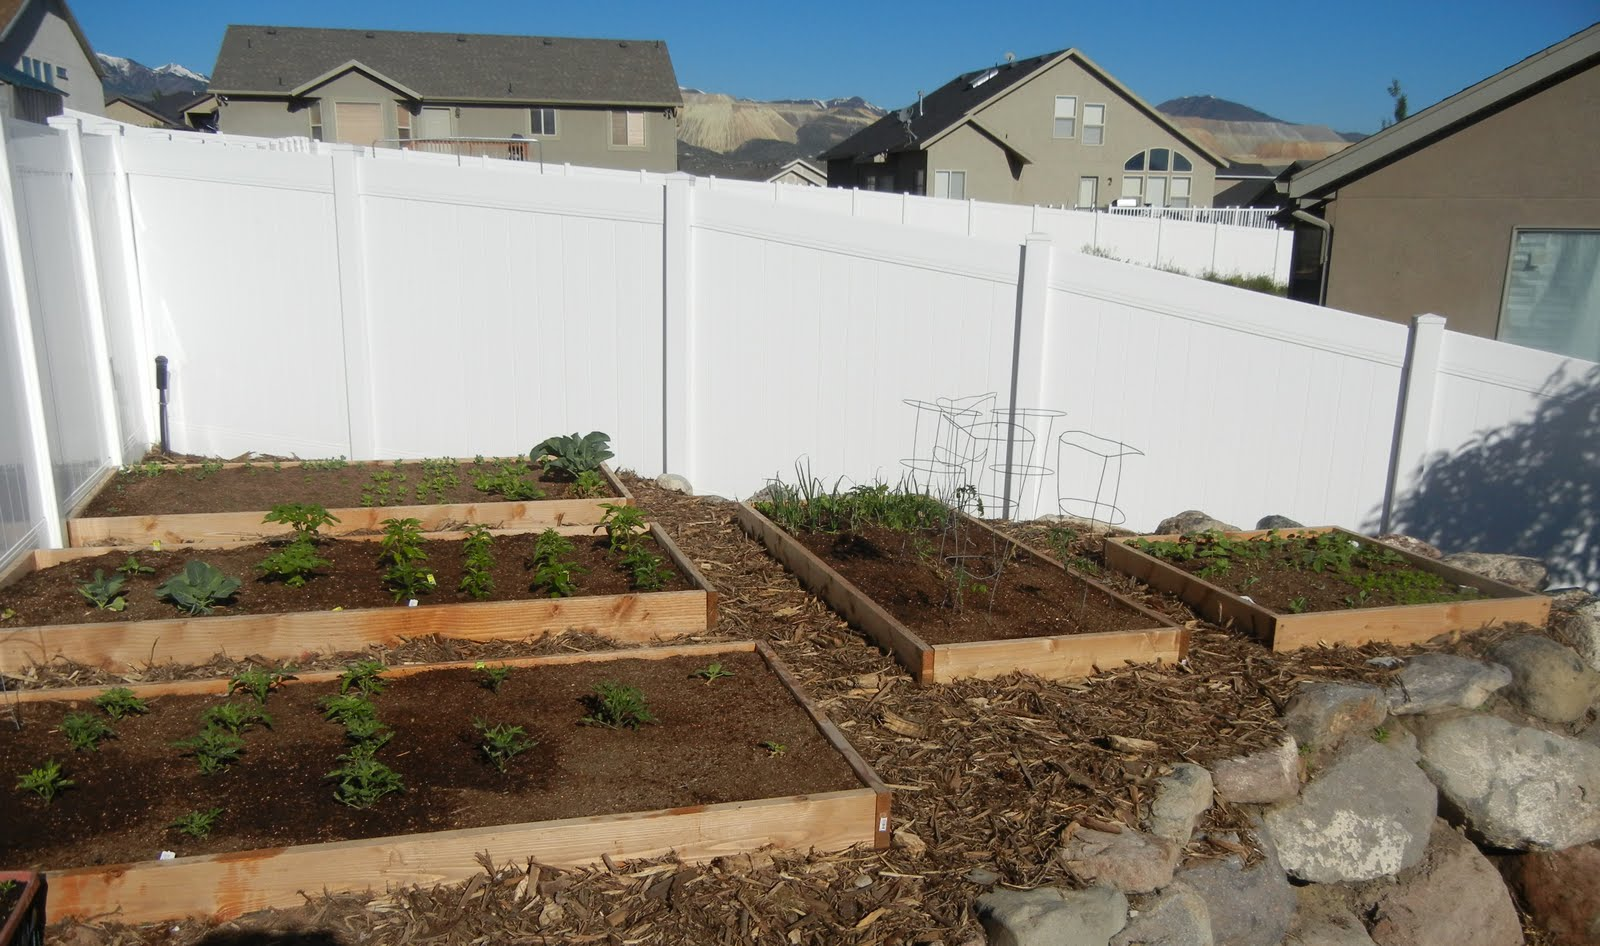 My Square Foot Garden Plan-2011 | Deals to Meals